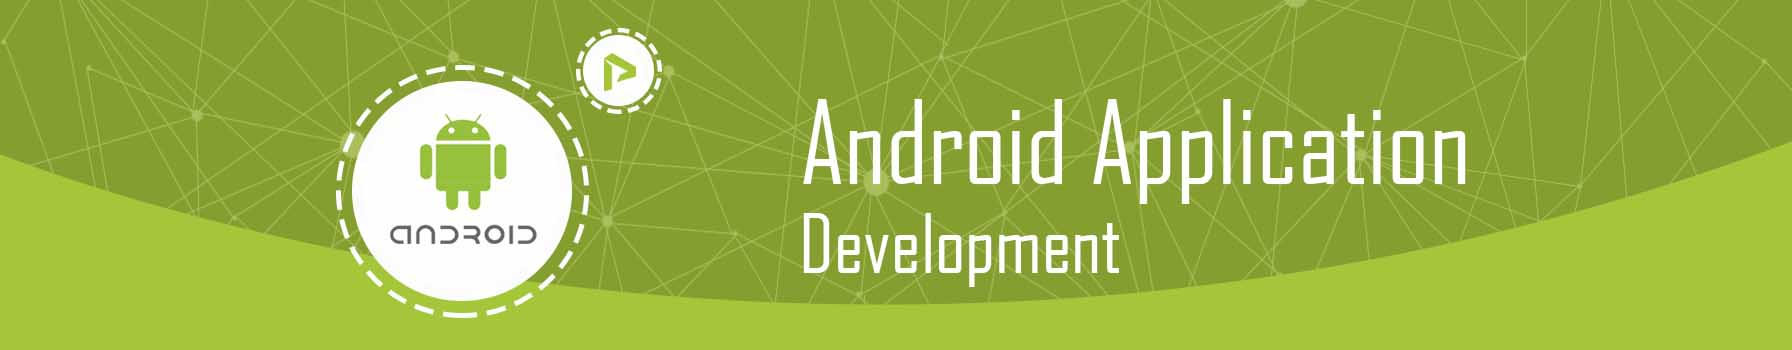 android-application-development.jpg